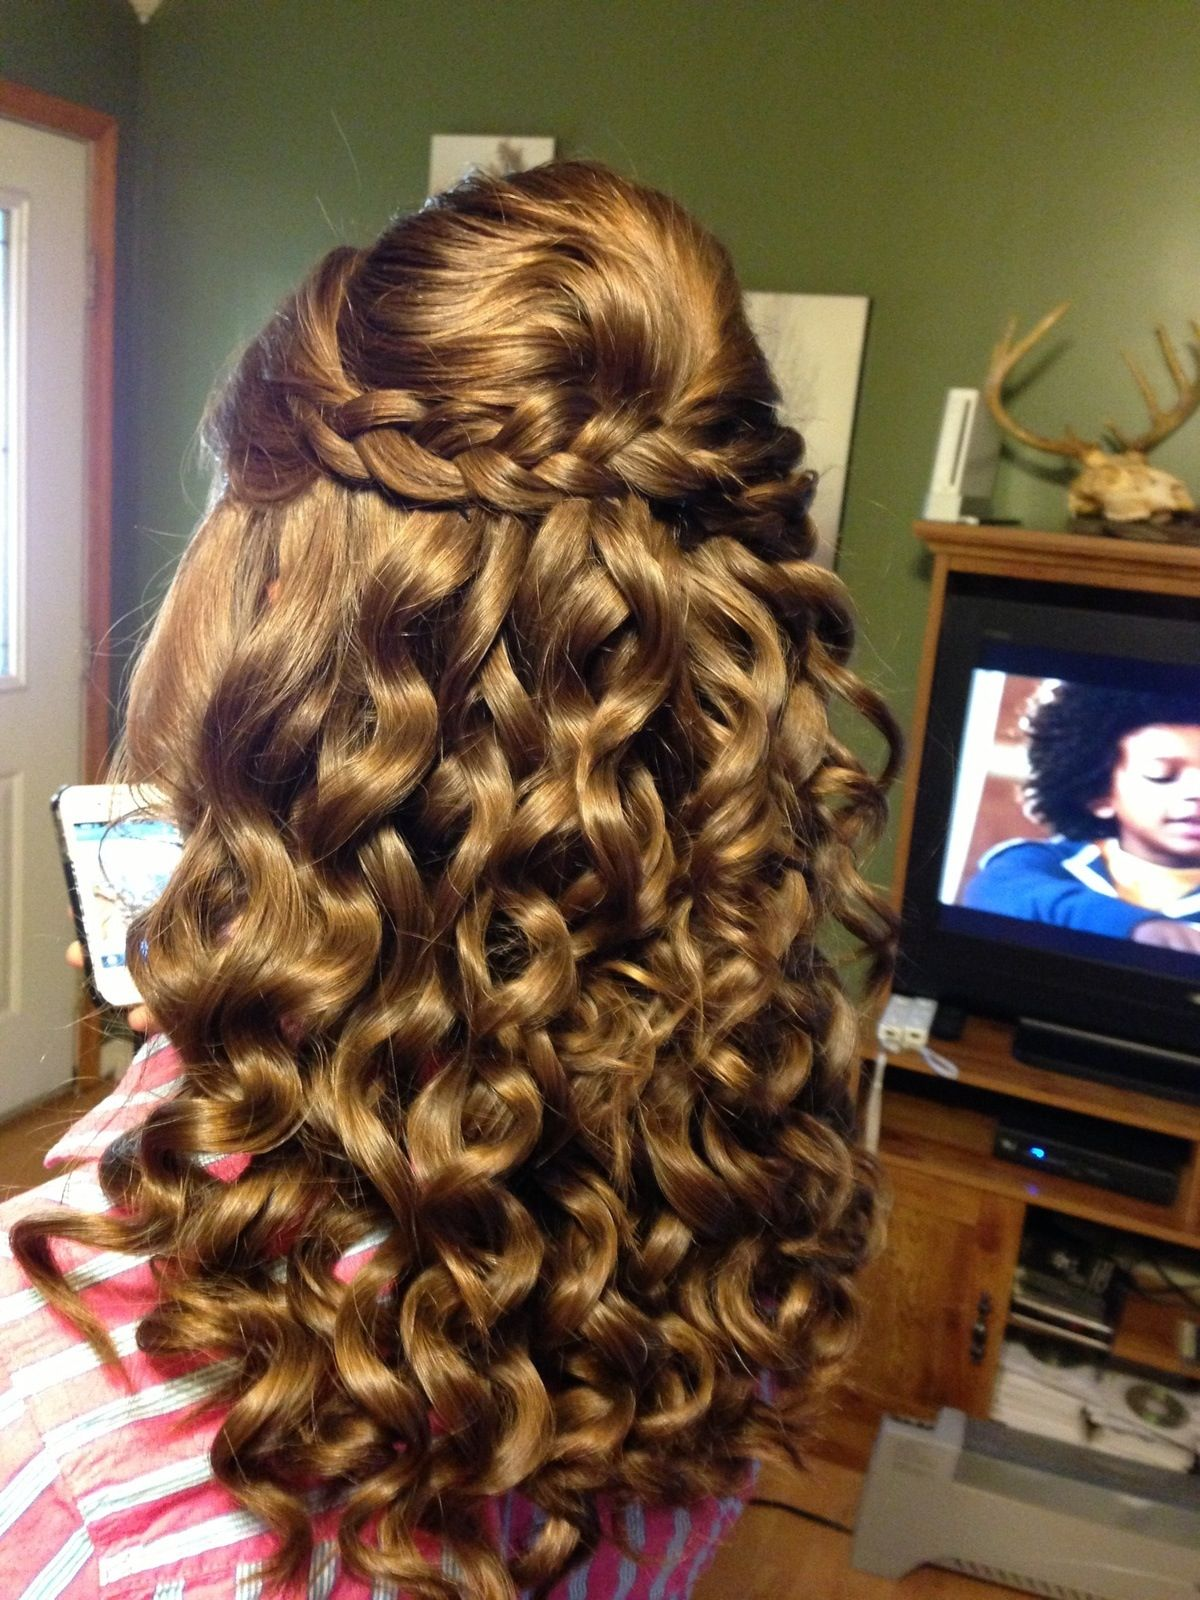 Half Updo Curly Homecoming Hairstyles Curly Prom Hair Long Hair Styles